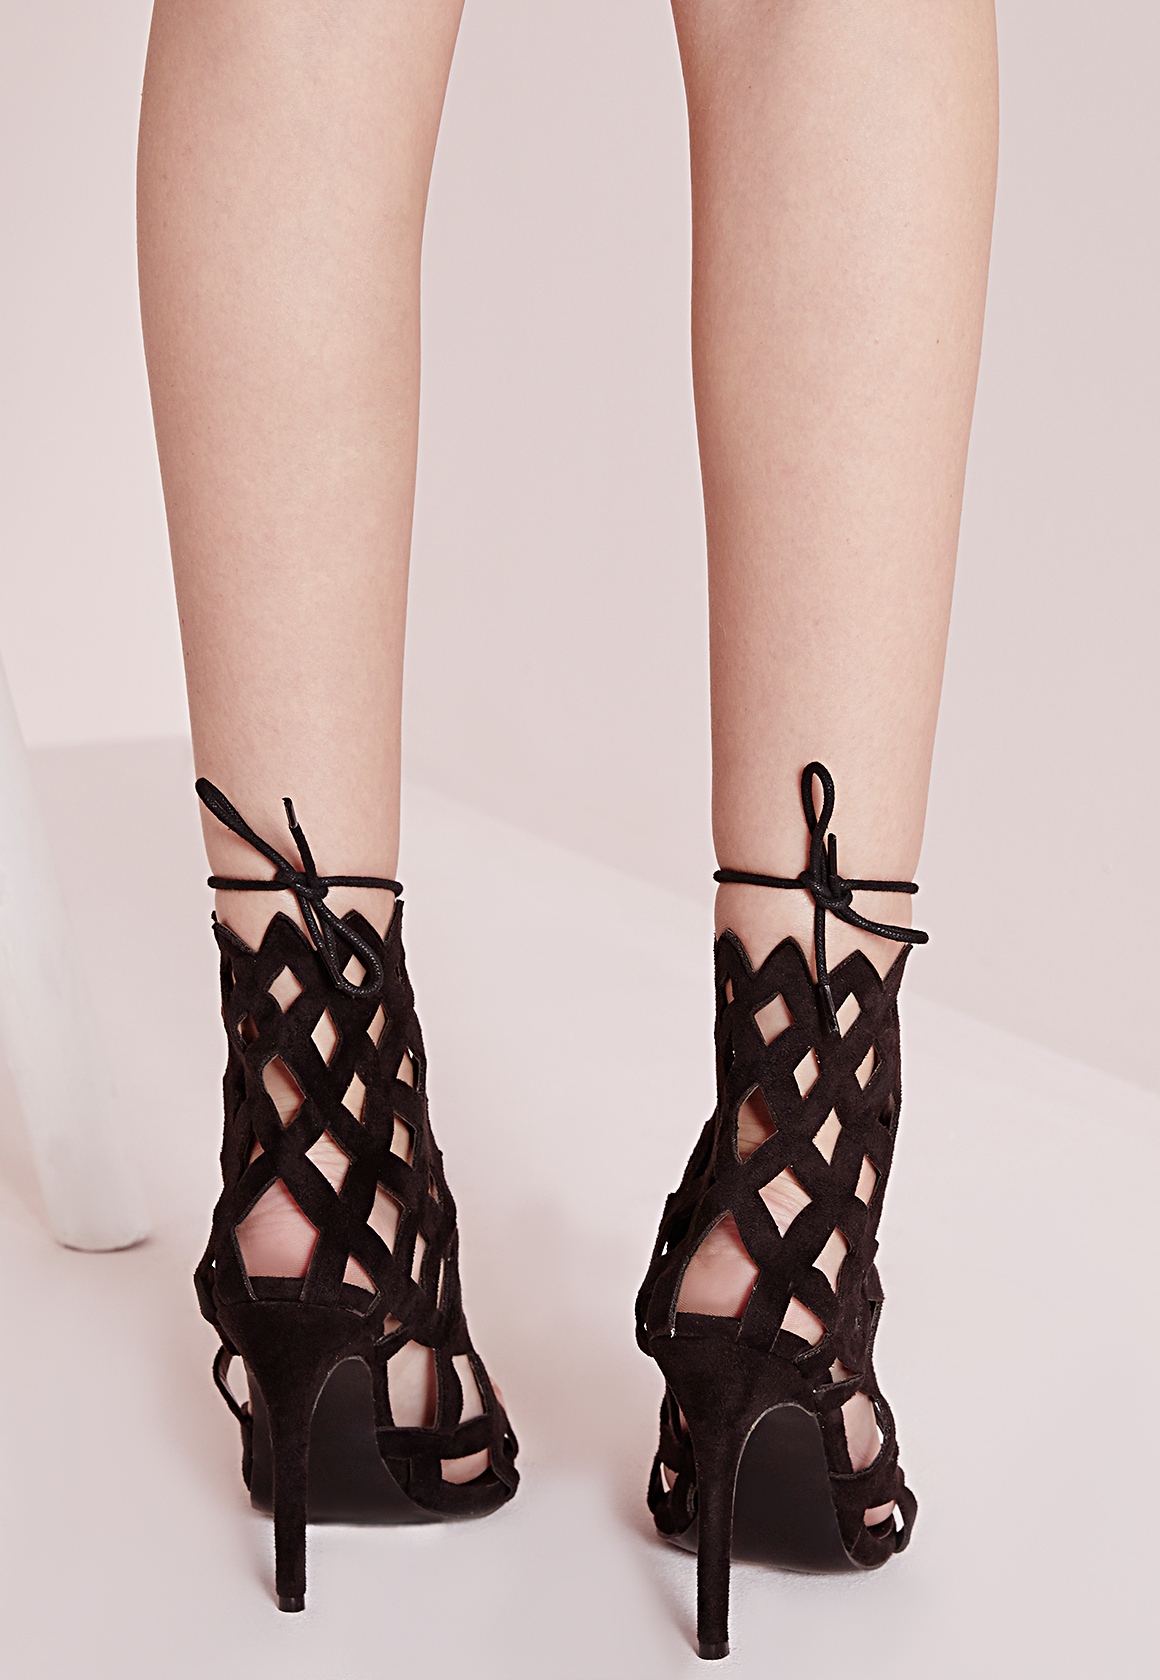 Find great deals on eBay for black lace up gladiator sandals. Shop with confidence.